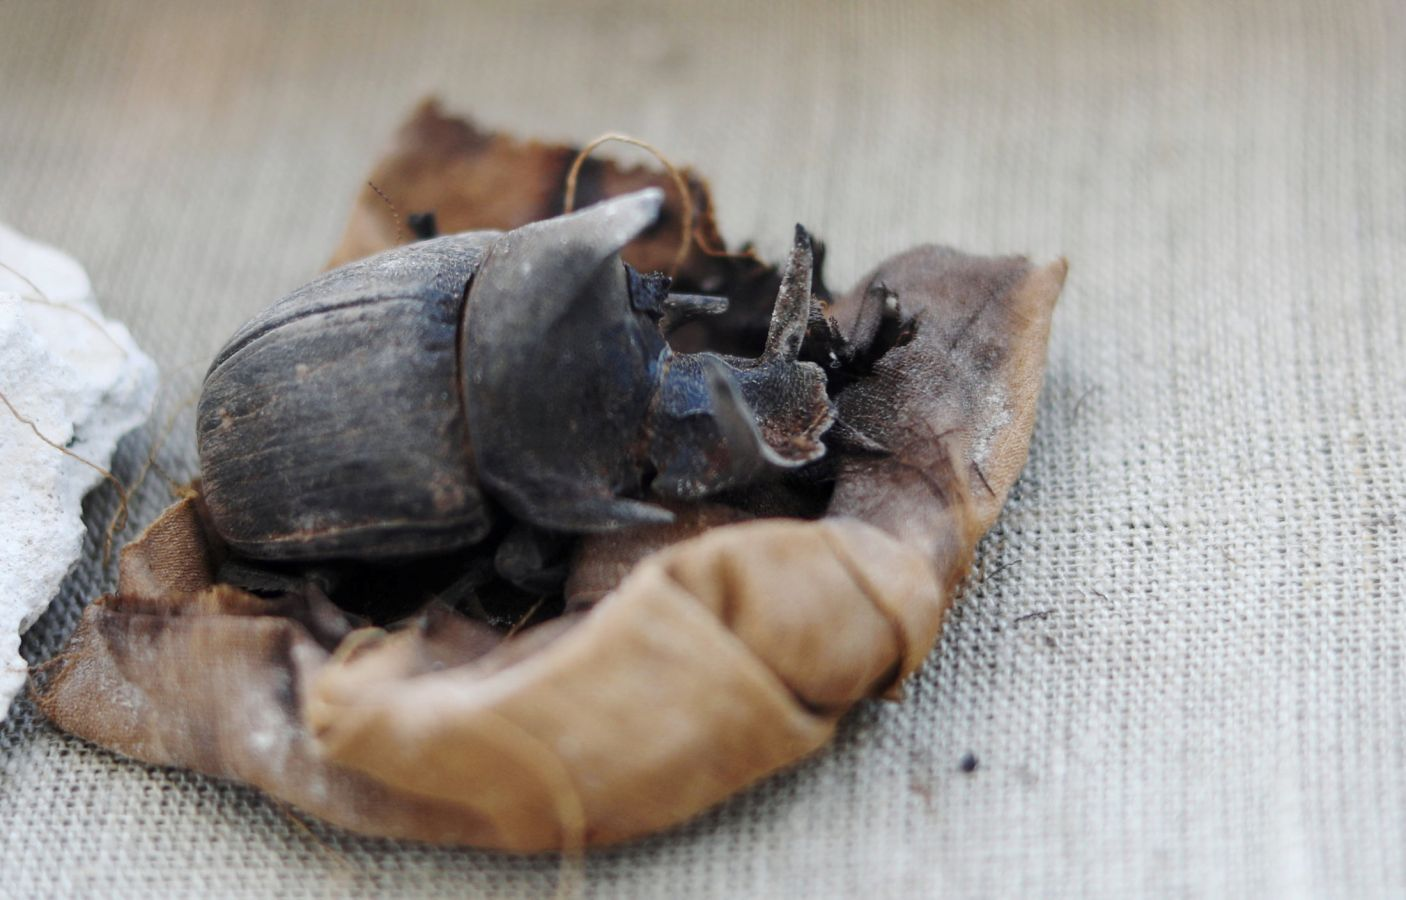 Archaeologists Find Mummified Beetles in Ancient Egyptian Tomb